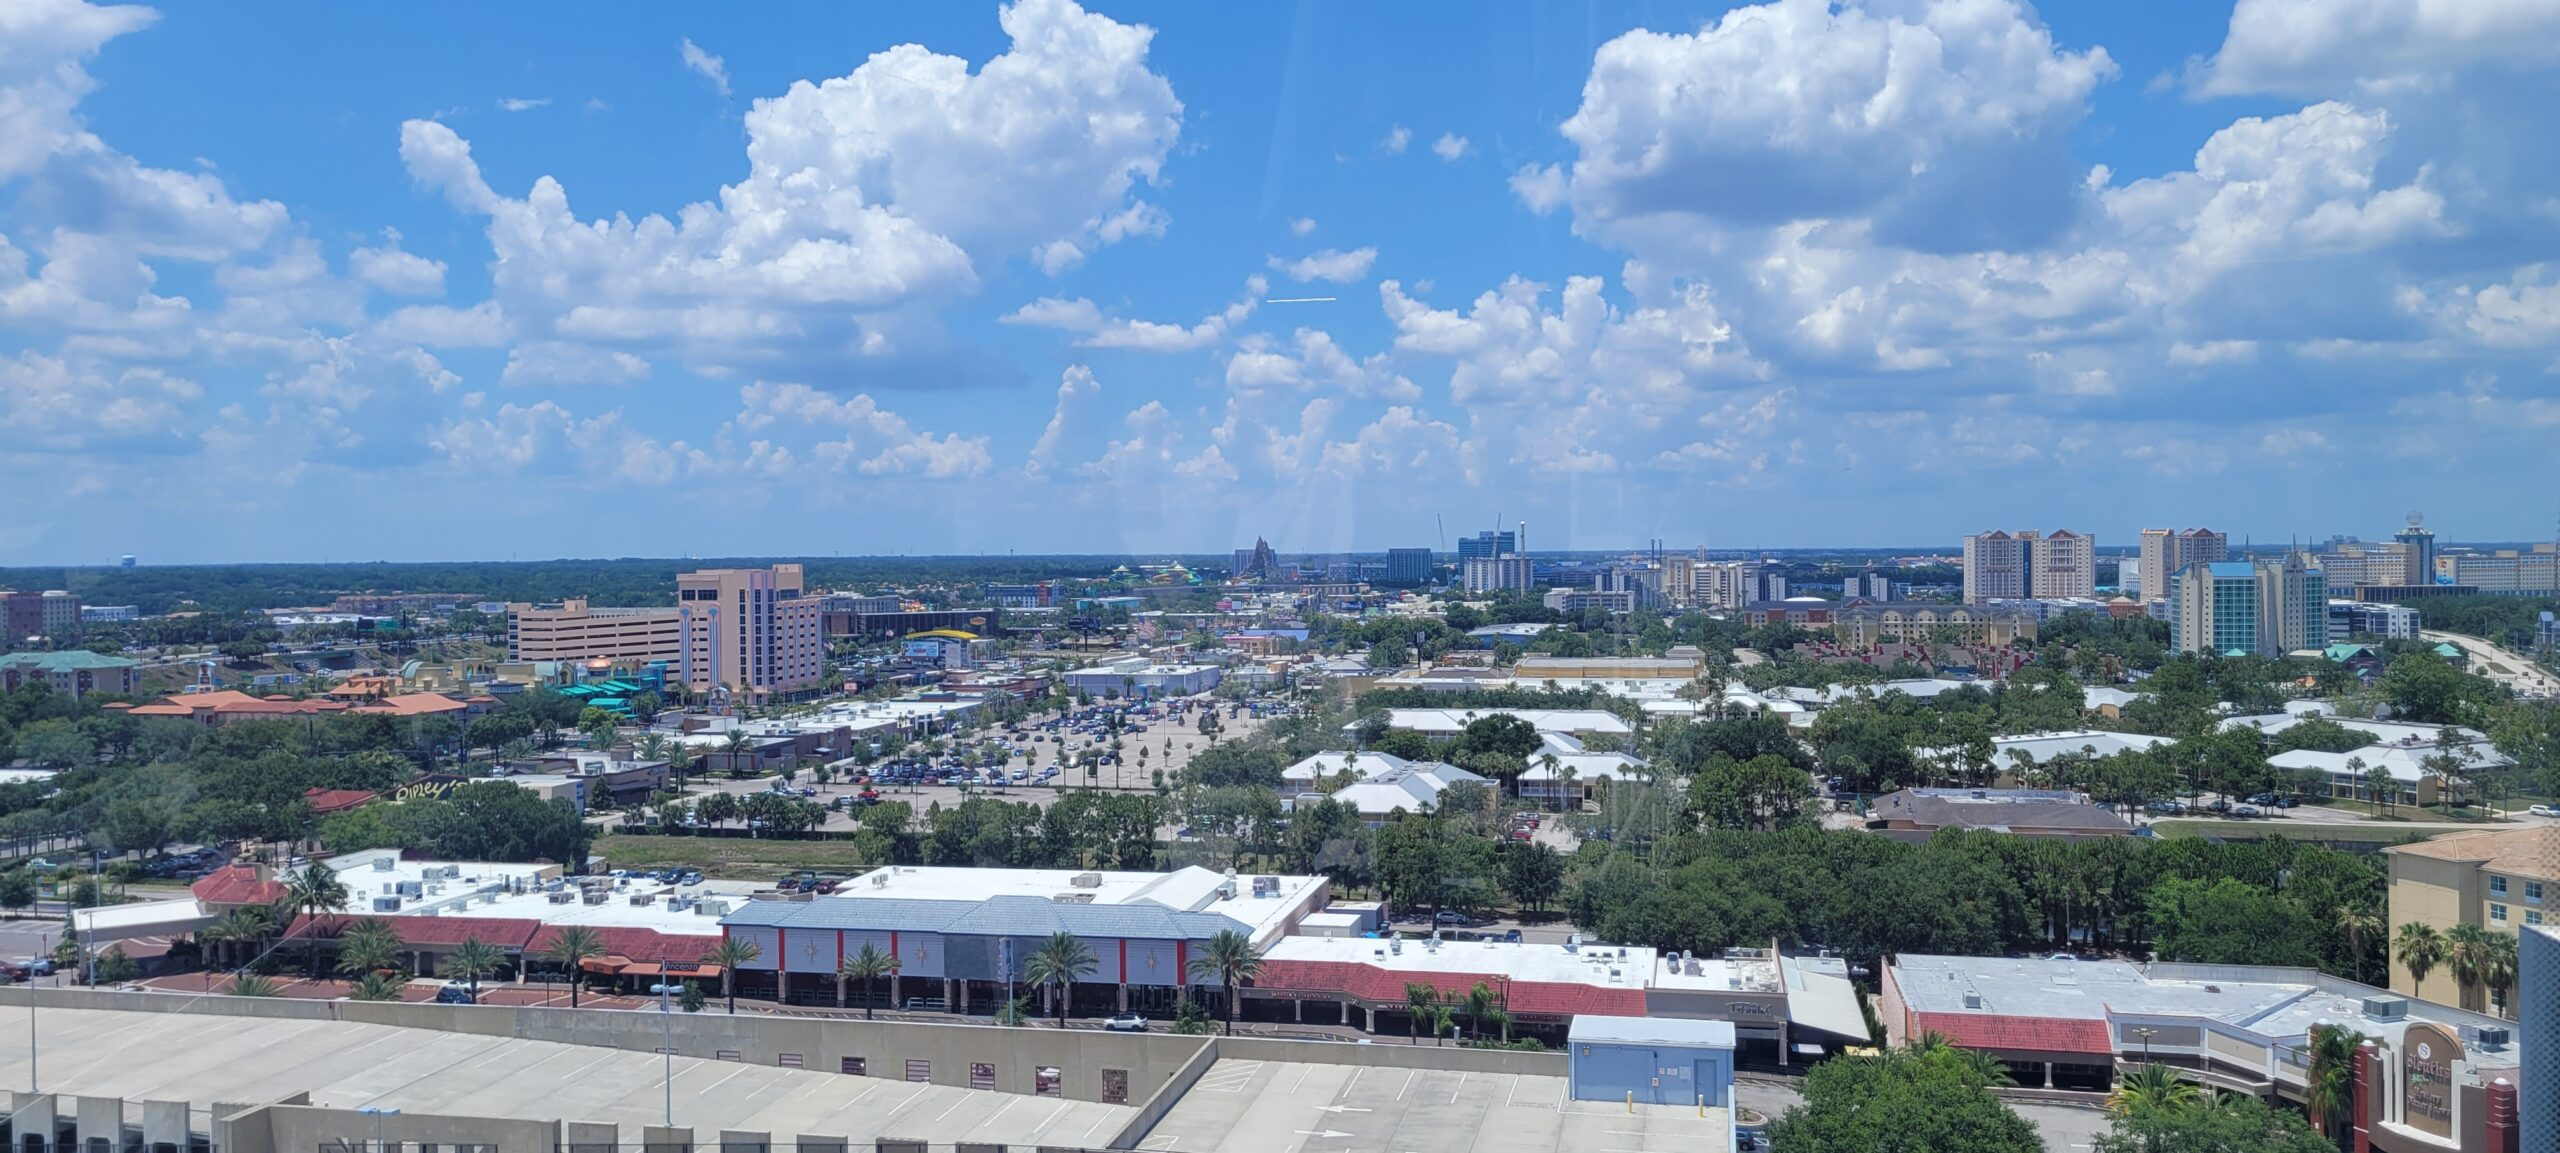 Have a family fun day at ICON Park in Orlando 26